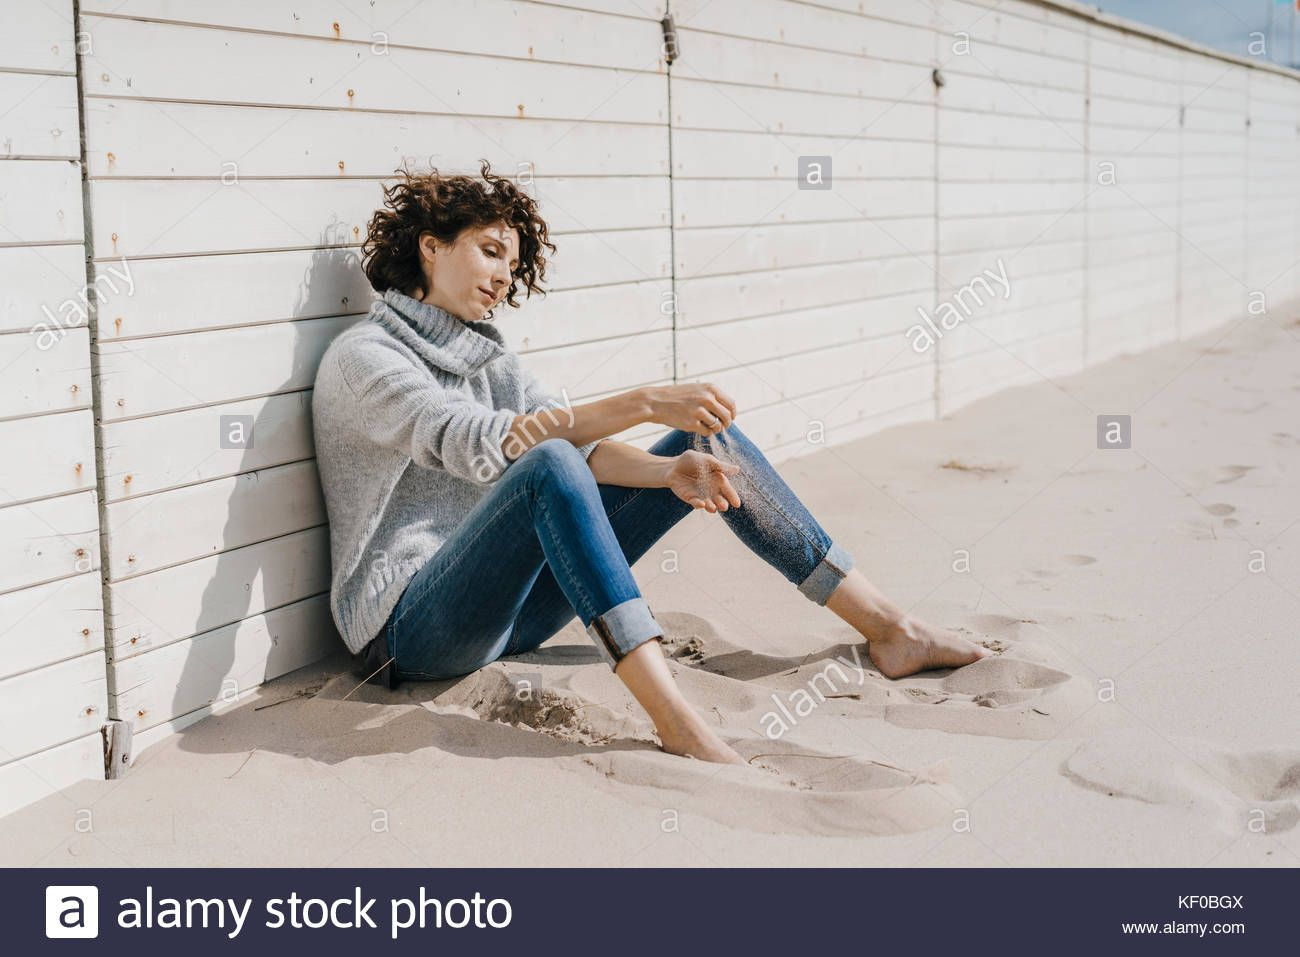 Woman Sitting On The Beach Leaning Against Wooden Wall Stock Photo 164122250 Alamy Stock Photos Woman Photo Stock Photos